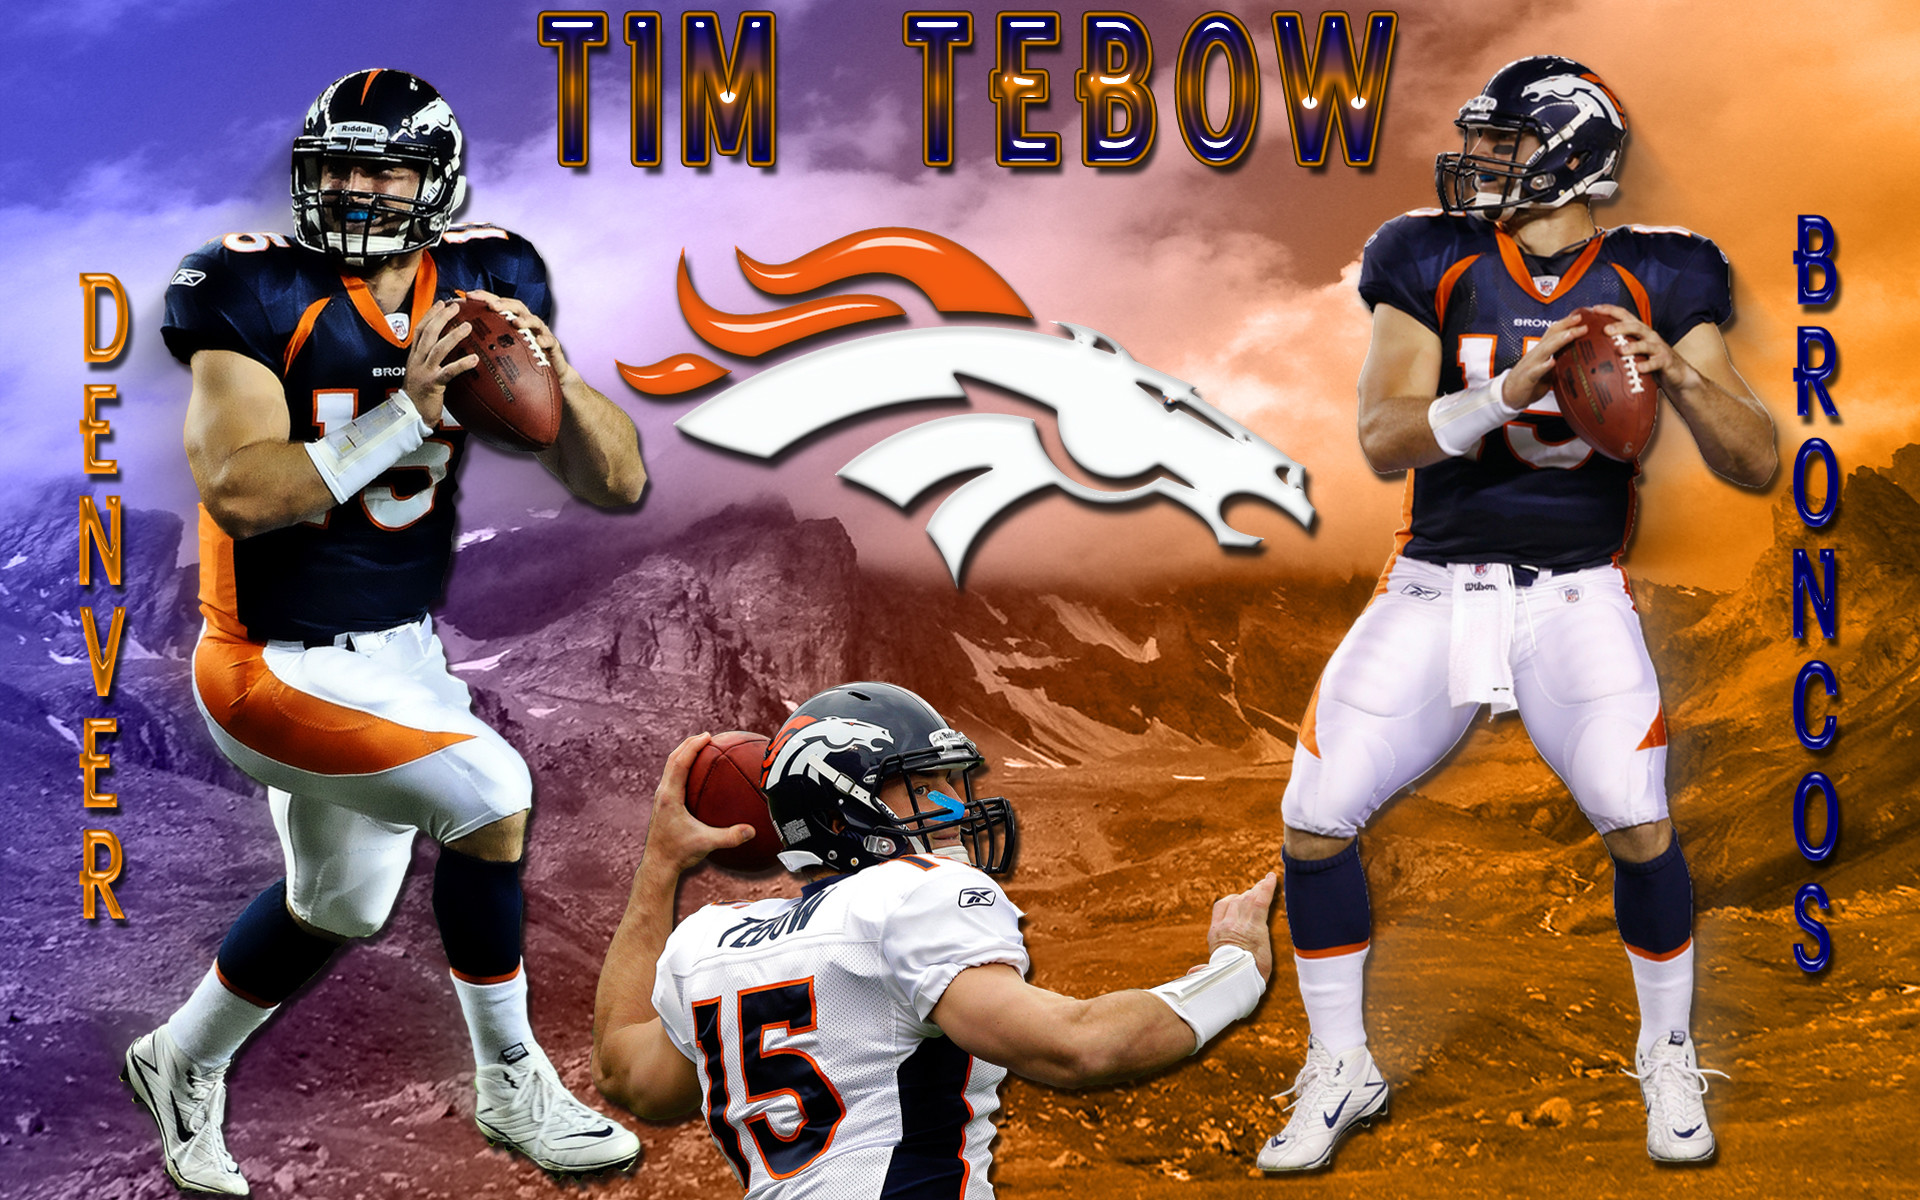 Wallpapers By Wicked Shadows: Tim Tebow Denver Broncos Wallpaper